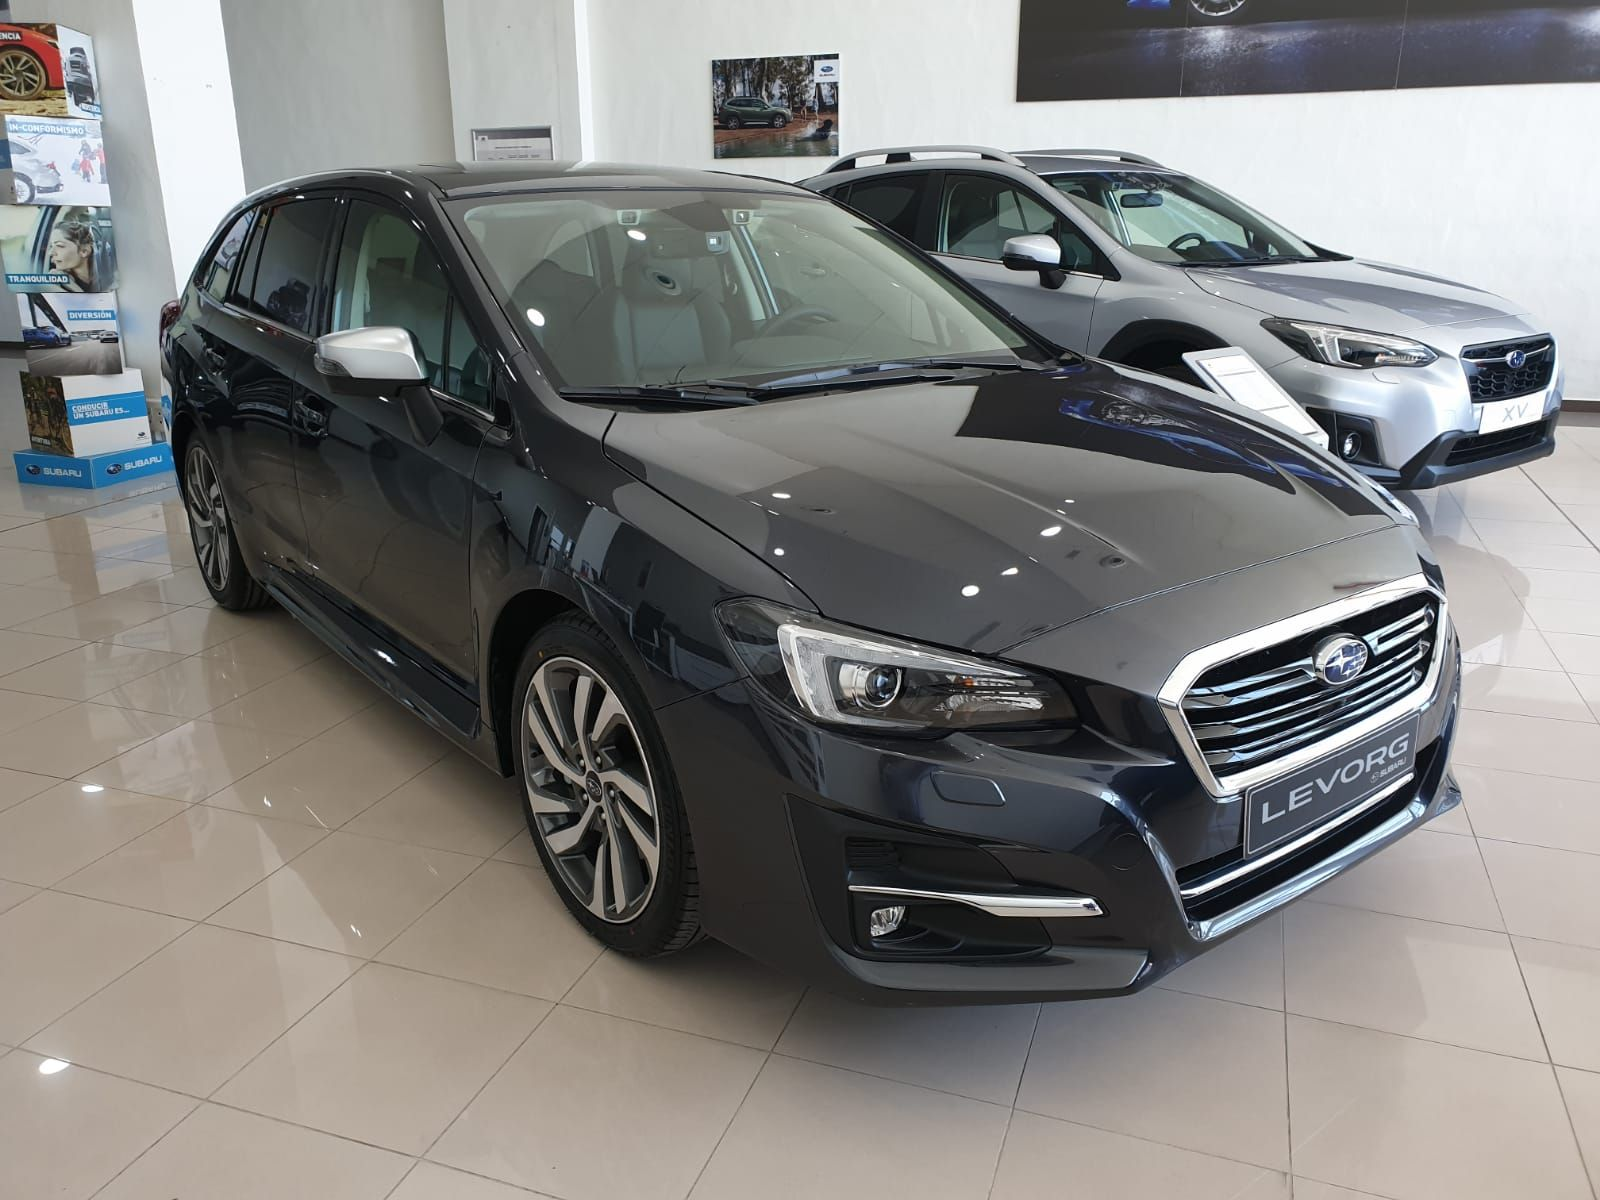 Subaru Levorg 2.0i Executive Plus